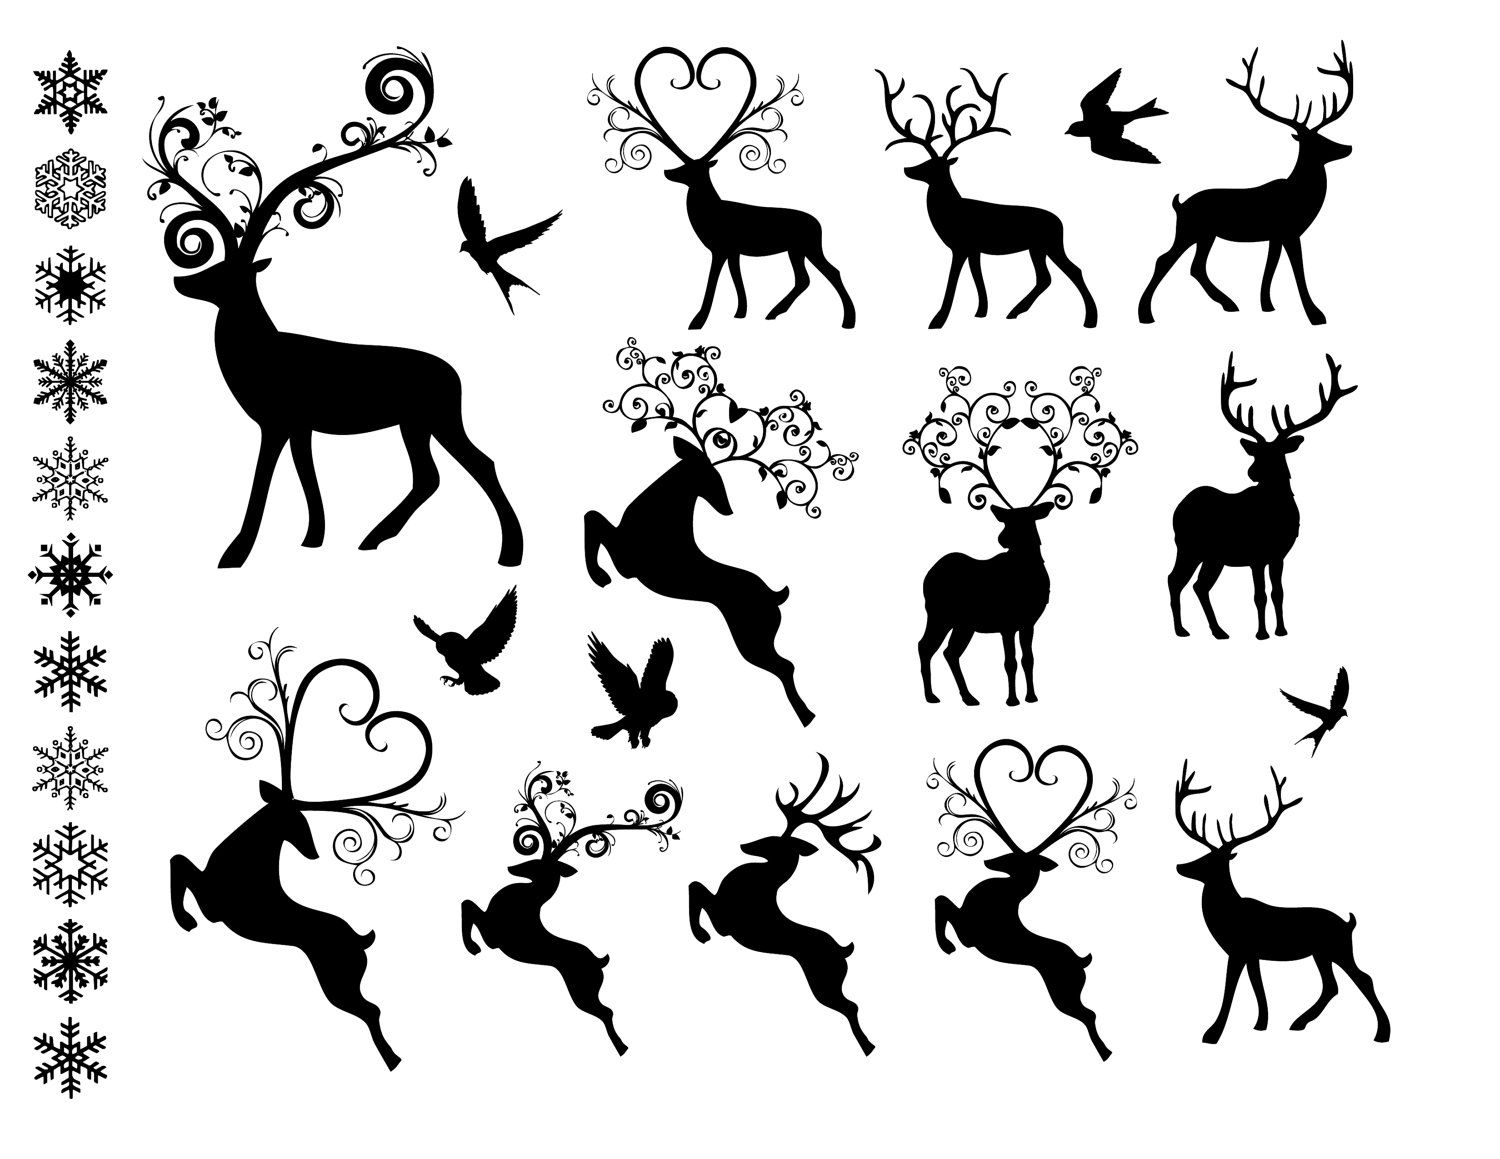 3 reindeer flying clipart black and white